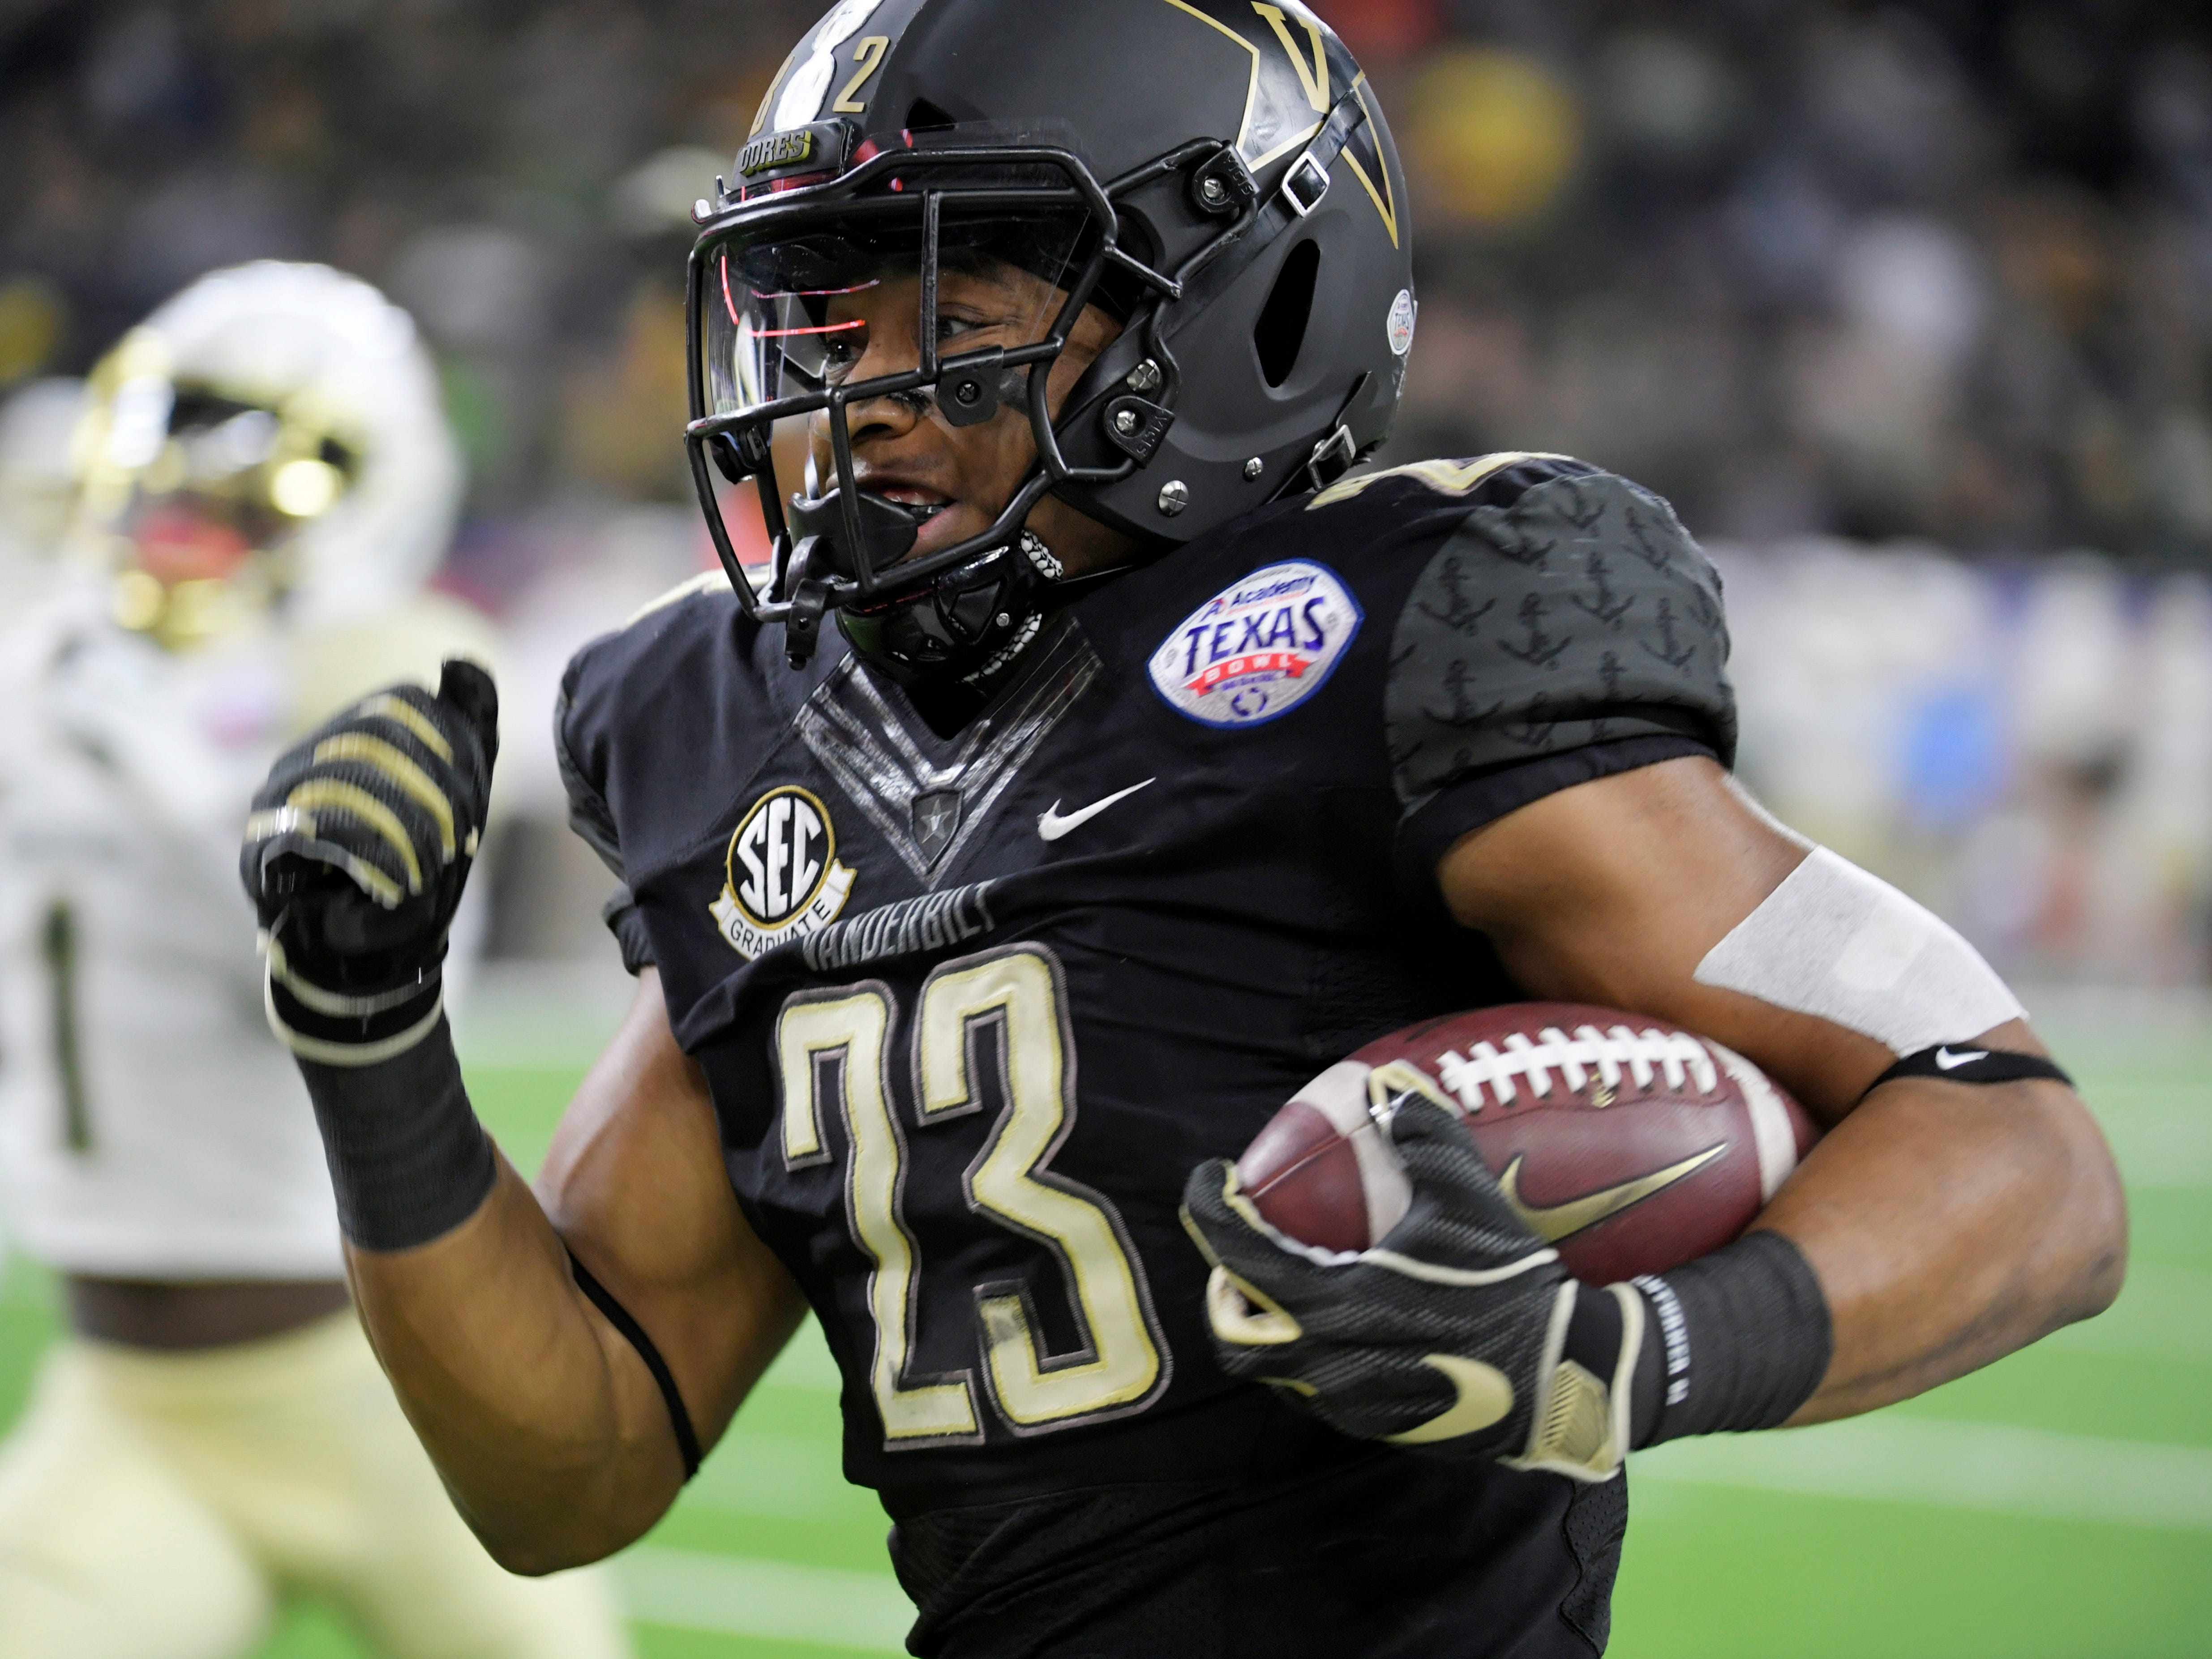 Vanderbilt Commodores running back Khari Blasingame (23) goes in for a touchodown on the team's first possession during the first quarter of the Academy Sports + Outdoors Texas Bowl at NRG Stadium in Houston on Thursday, Dec. 27, 2018.